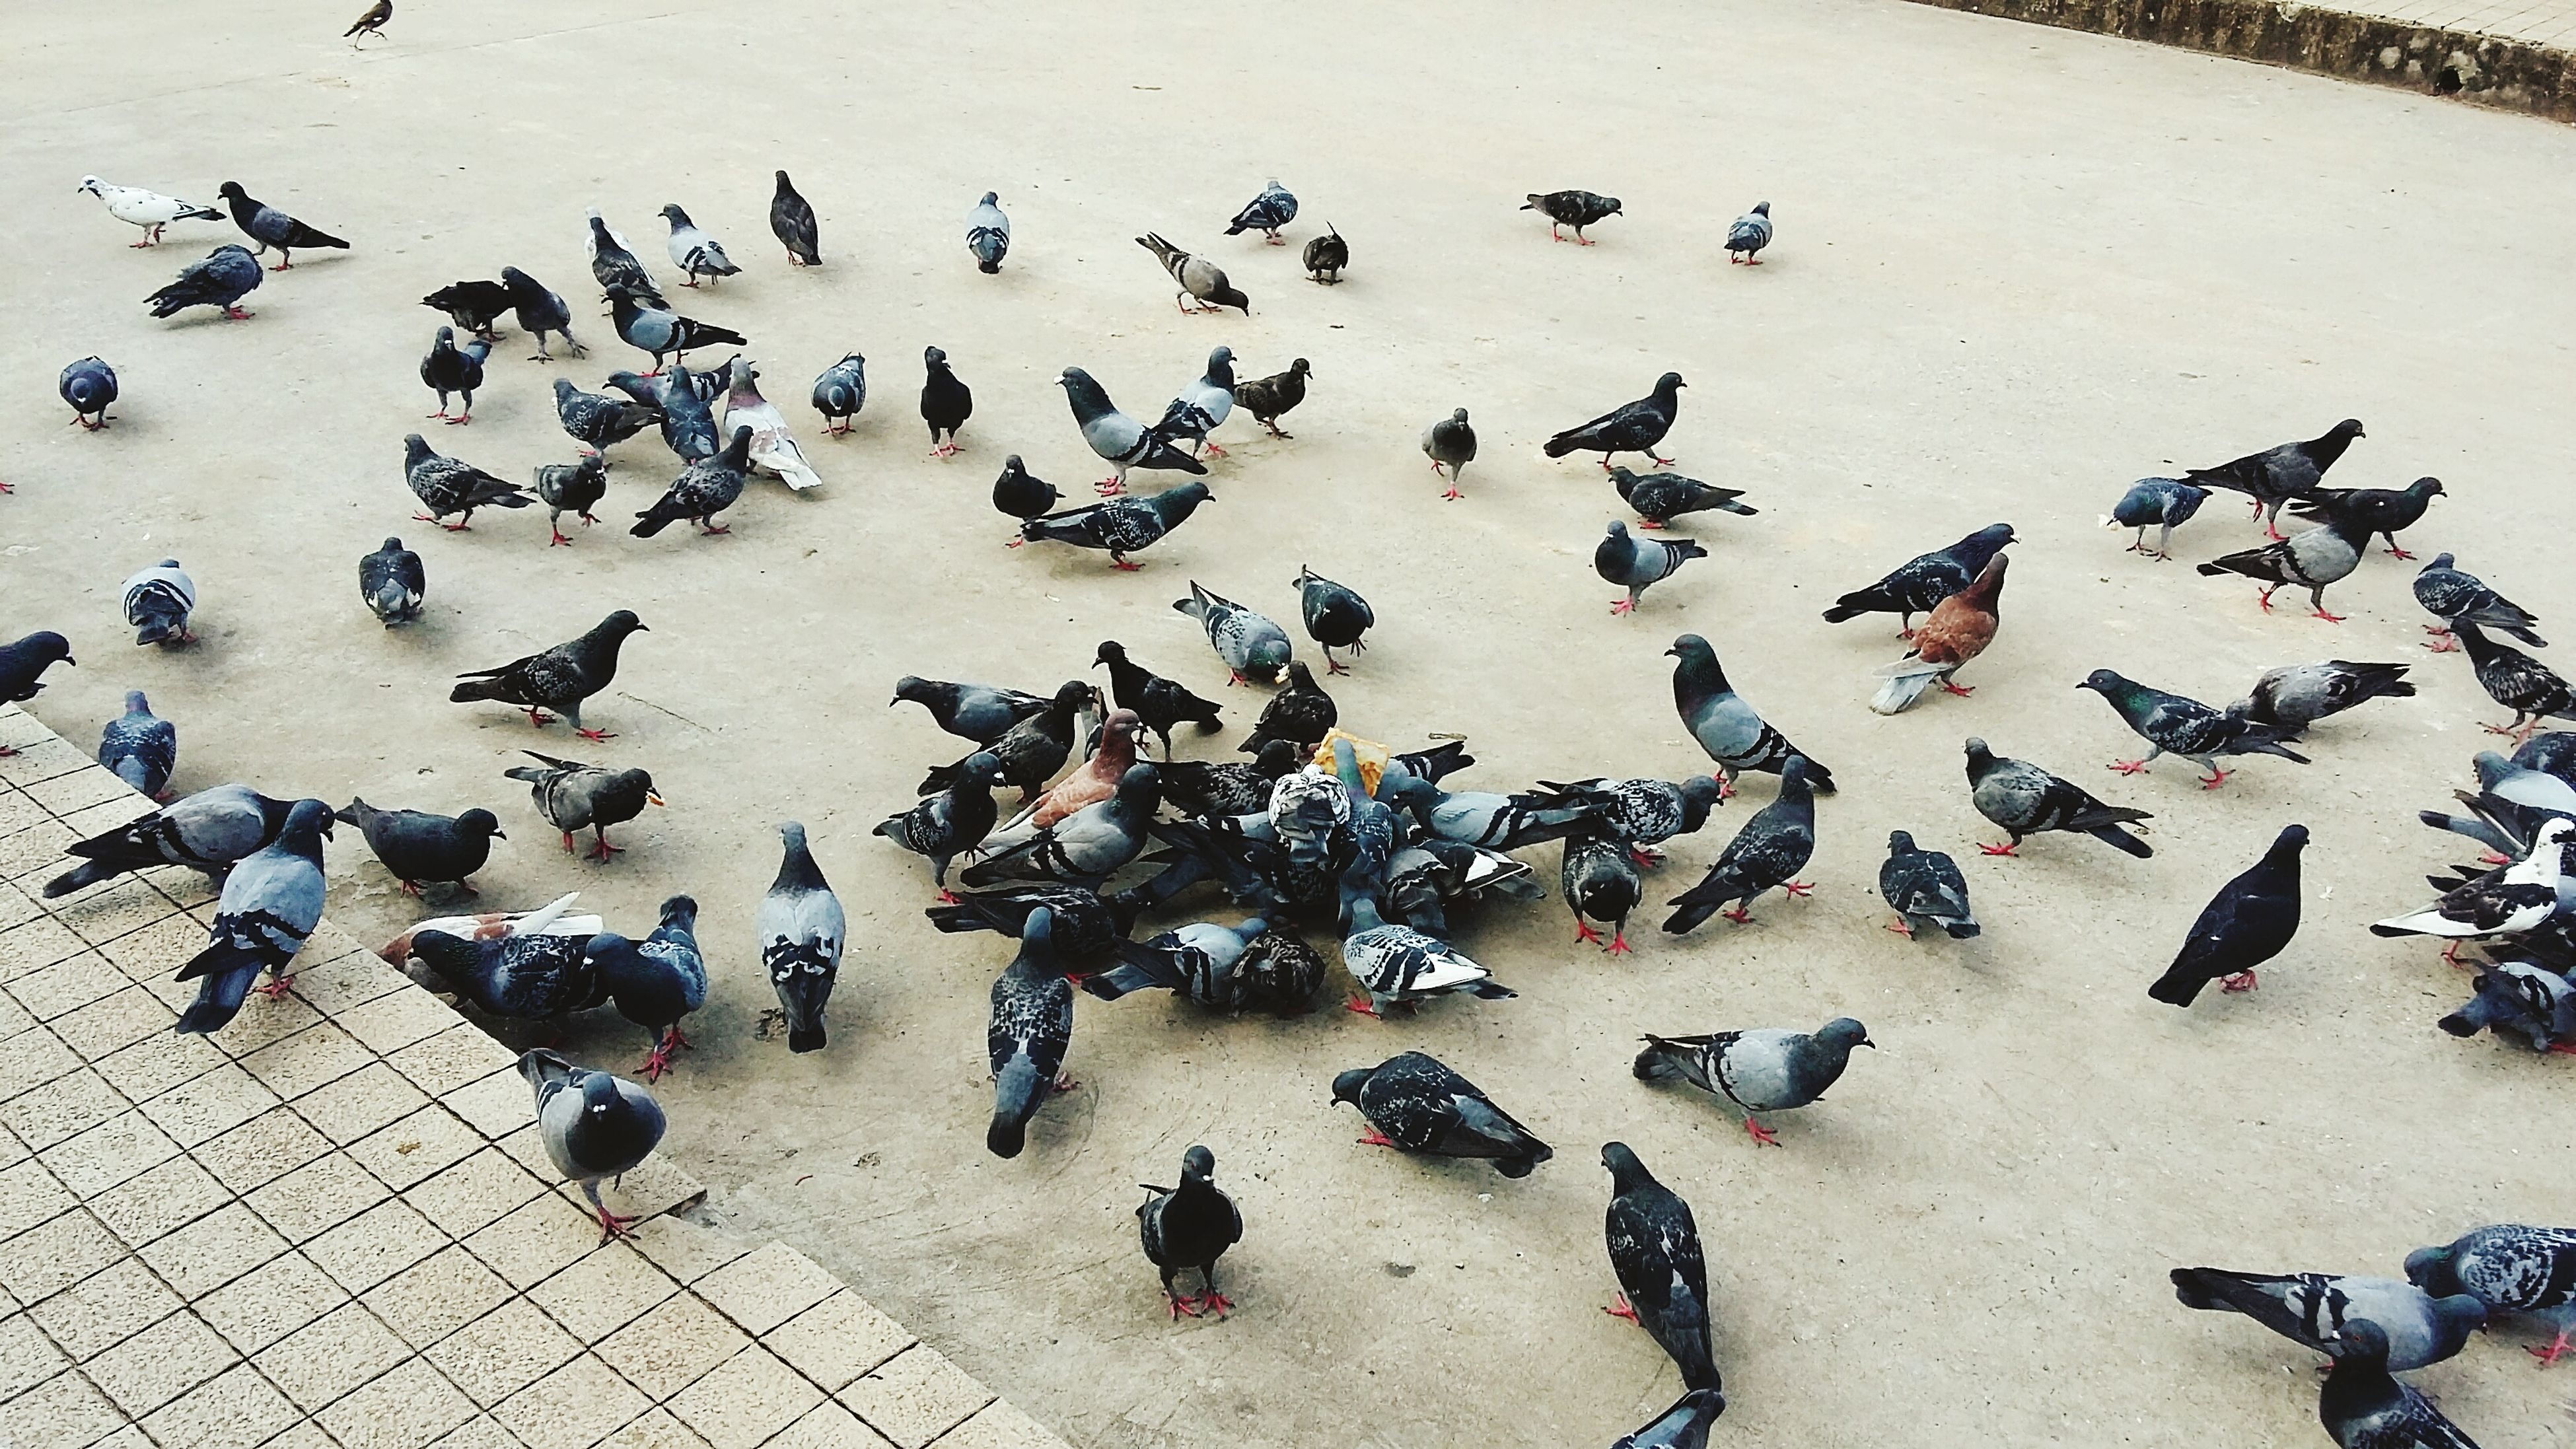 bird, animal themes, animals in the wild, large group of people, togetherness, city, high angle view, wildlife, vertebrate, standing, pigeon, flock of birds, full length, flying, town square, city life, zoology, day, crowd, tranquility, outdoors, nature, pedestrian walkway